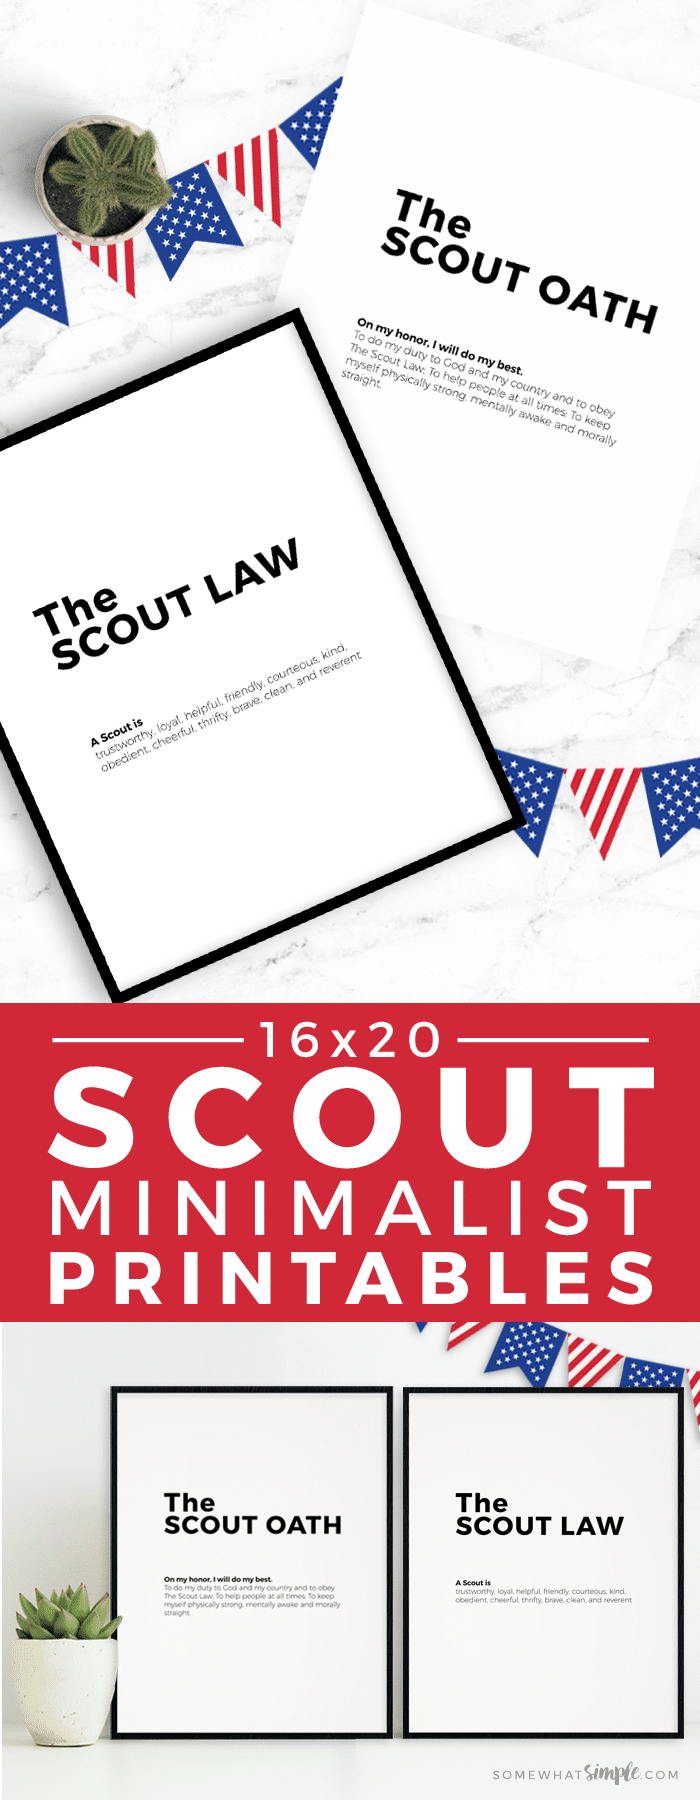 Our minimalistBoy Scout Oath and Law Printables will make the perfect accessory to your next court of honor or pack meeting! #boyscouts #printable #courtofhonor #cubscouts #scout